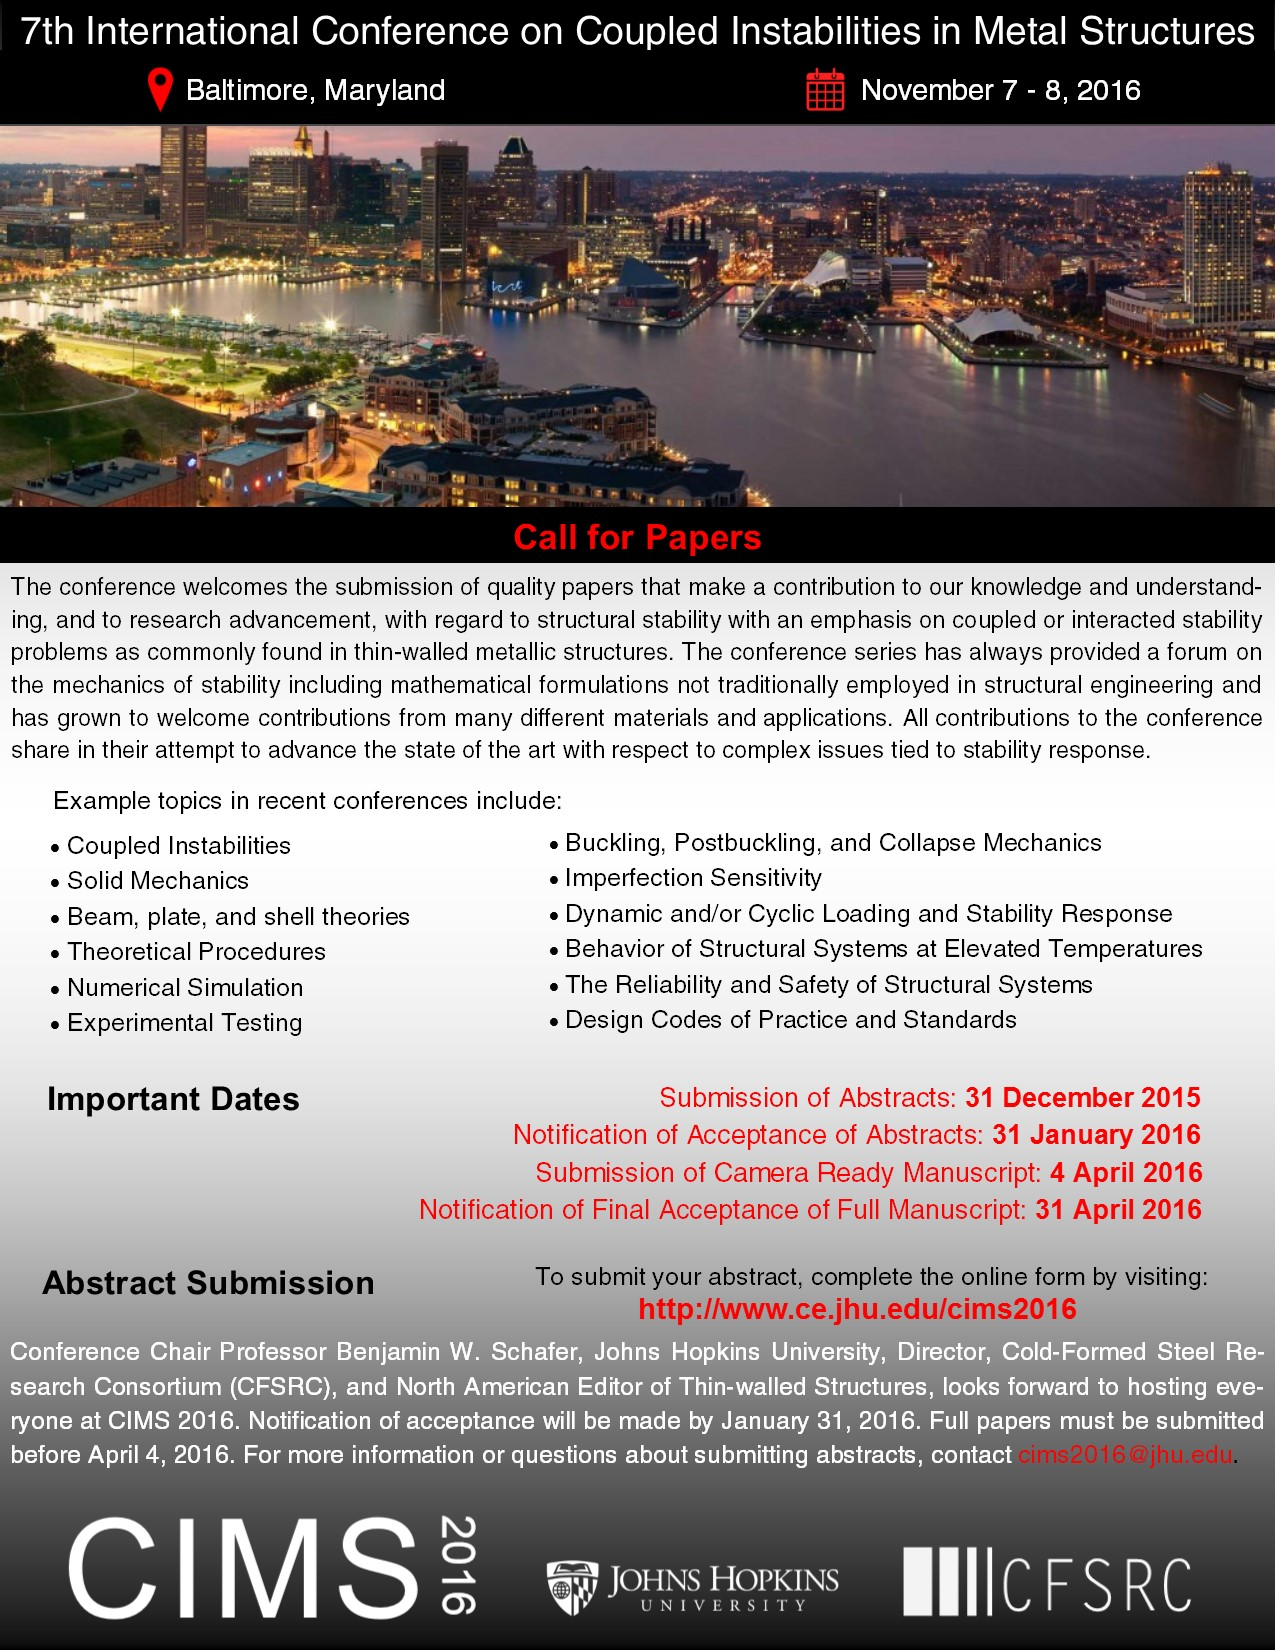 CIMS 2016 call for papers